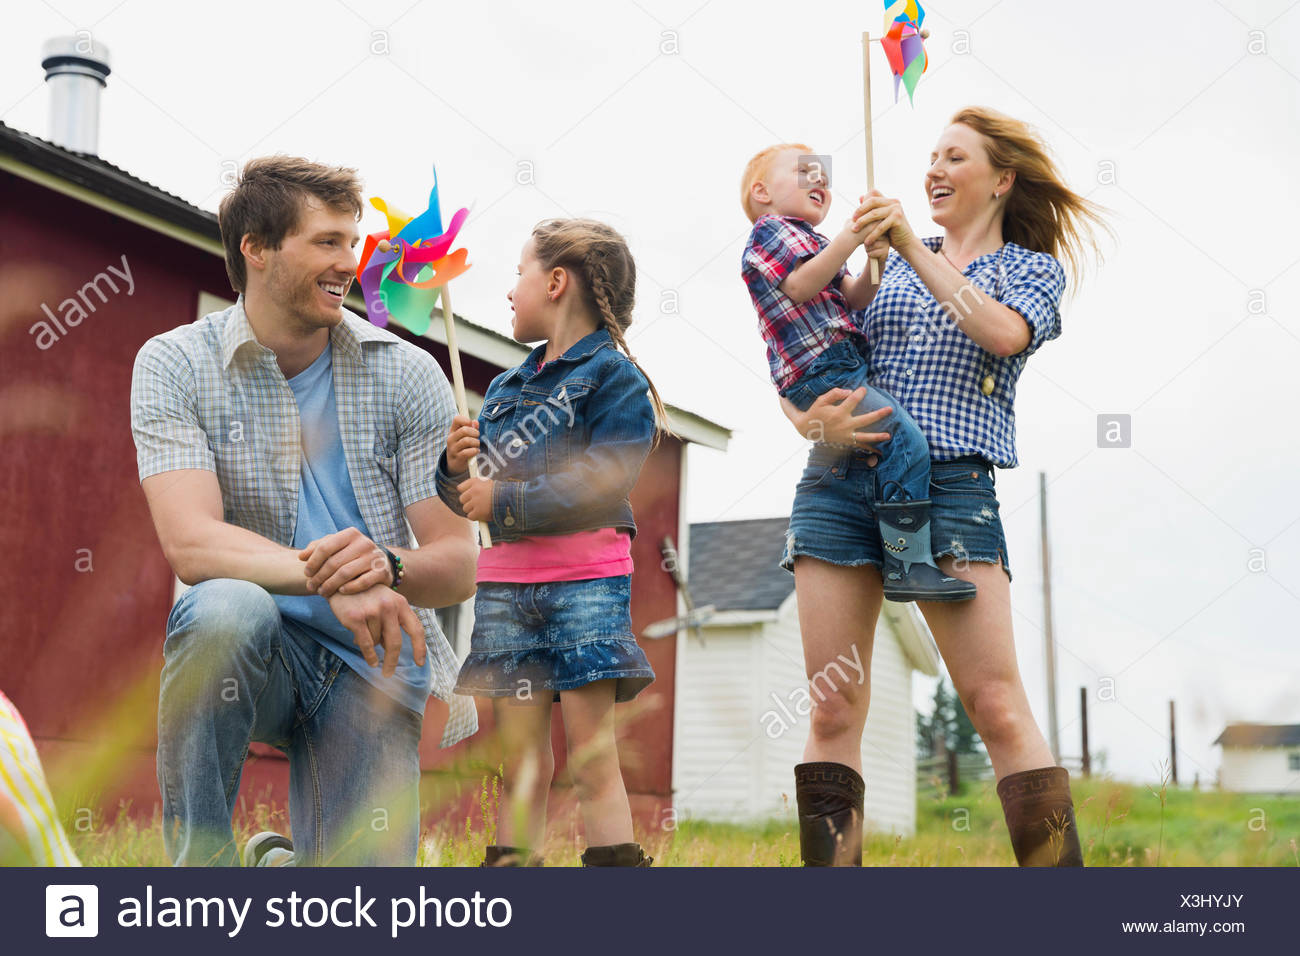 Parents with children holding pinwheels - Stock Image